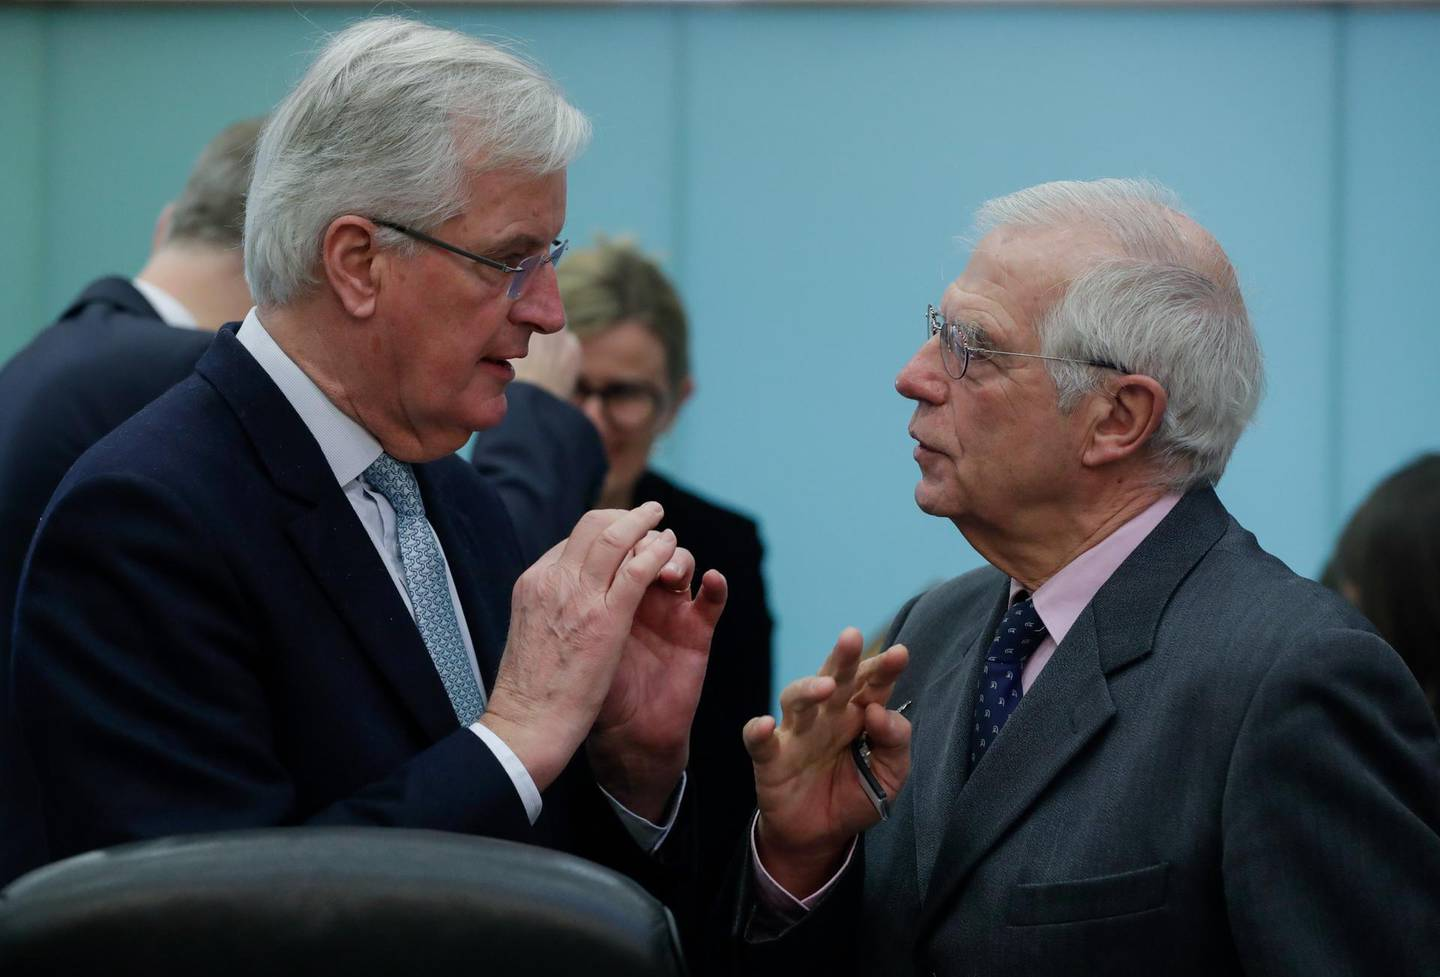 epa08174676 European Union chief Brexit negotiator Michel Barnier (L) and High Representative of the EU for Foreign Affairs and Security Policy Josep Borrell attend the weekly college meeting of the European Commission in Brussels, Belgium, 29 January 2020.  EPA/STEPHANIE LECOCQ